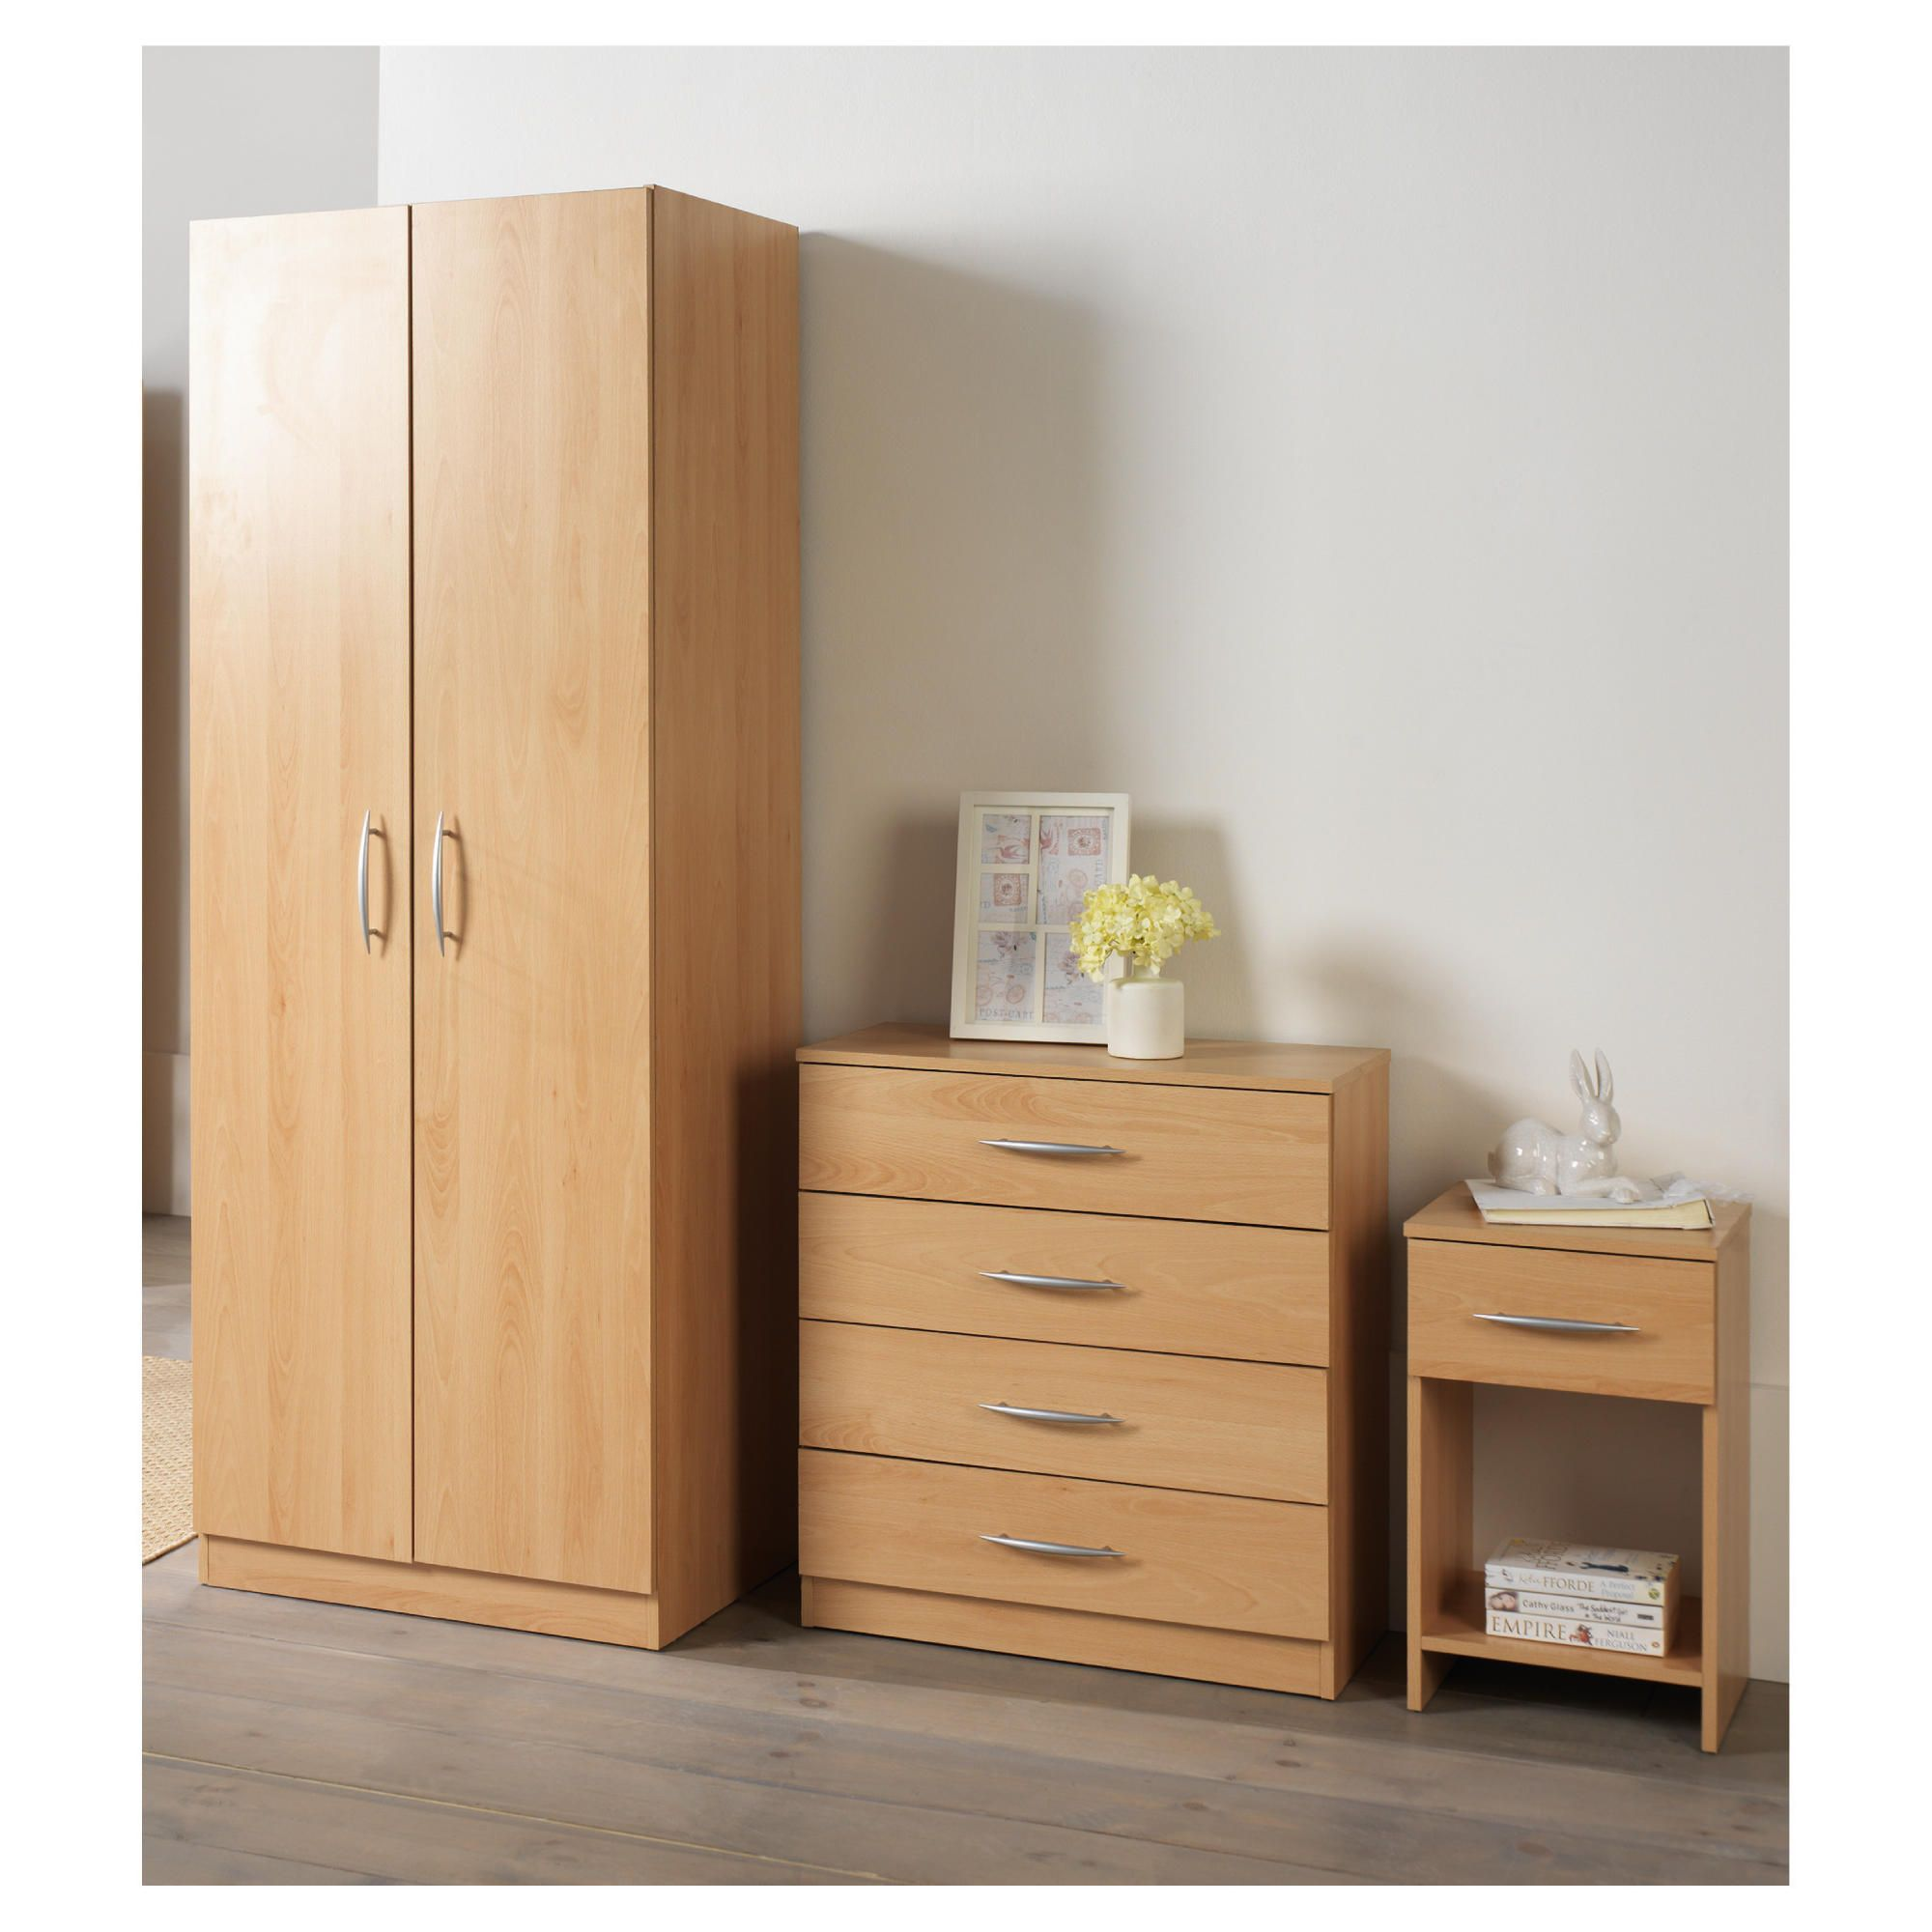 Image Result For Tesco Bedroom Furniture Sets